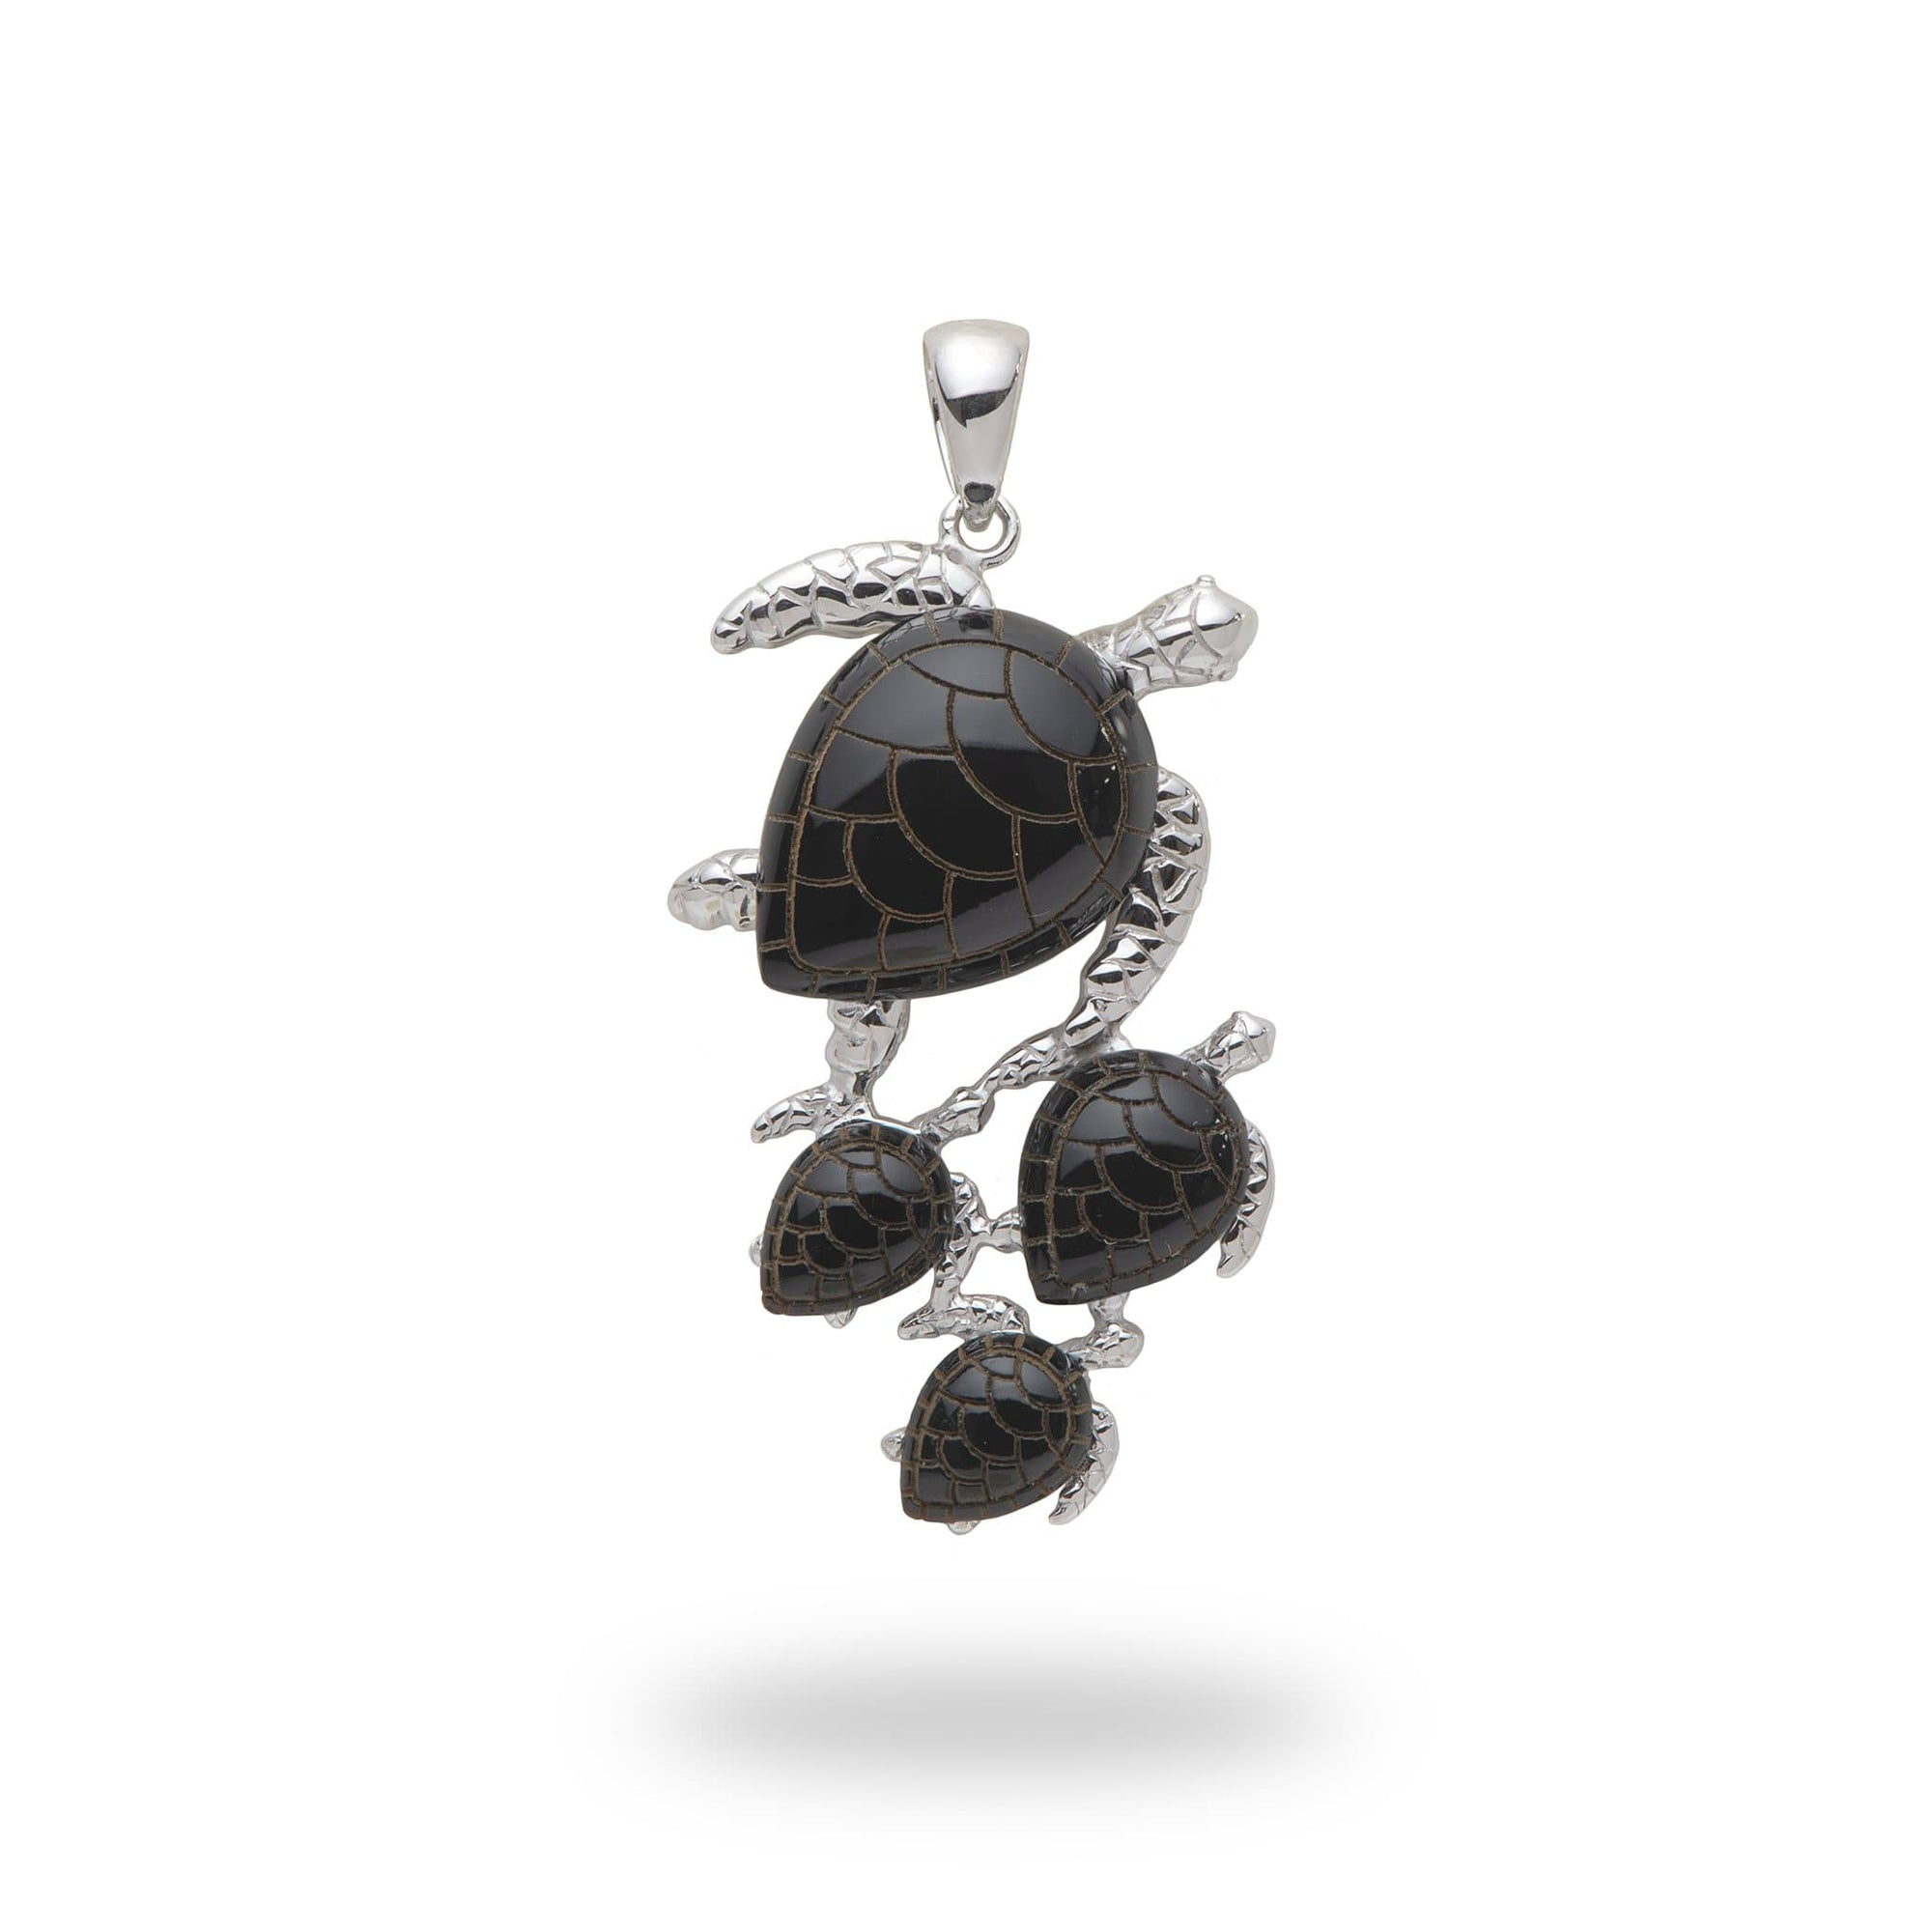 Black Coral Turtle Pendant in 14K White Gold - Maui Divers Jewelry